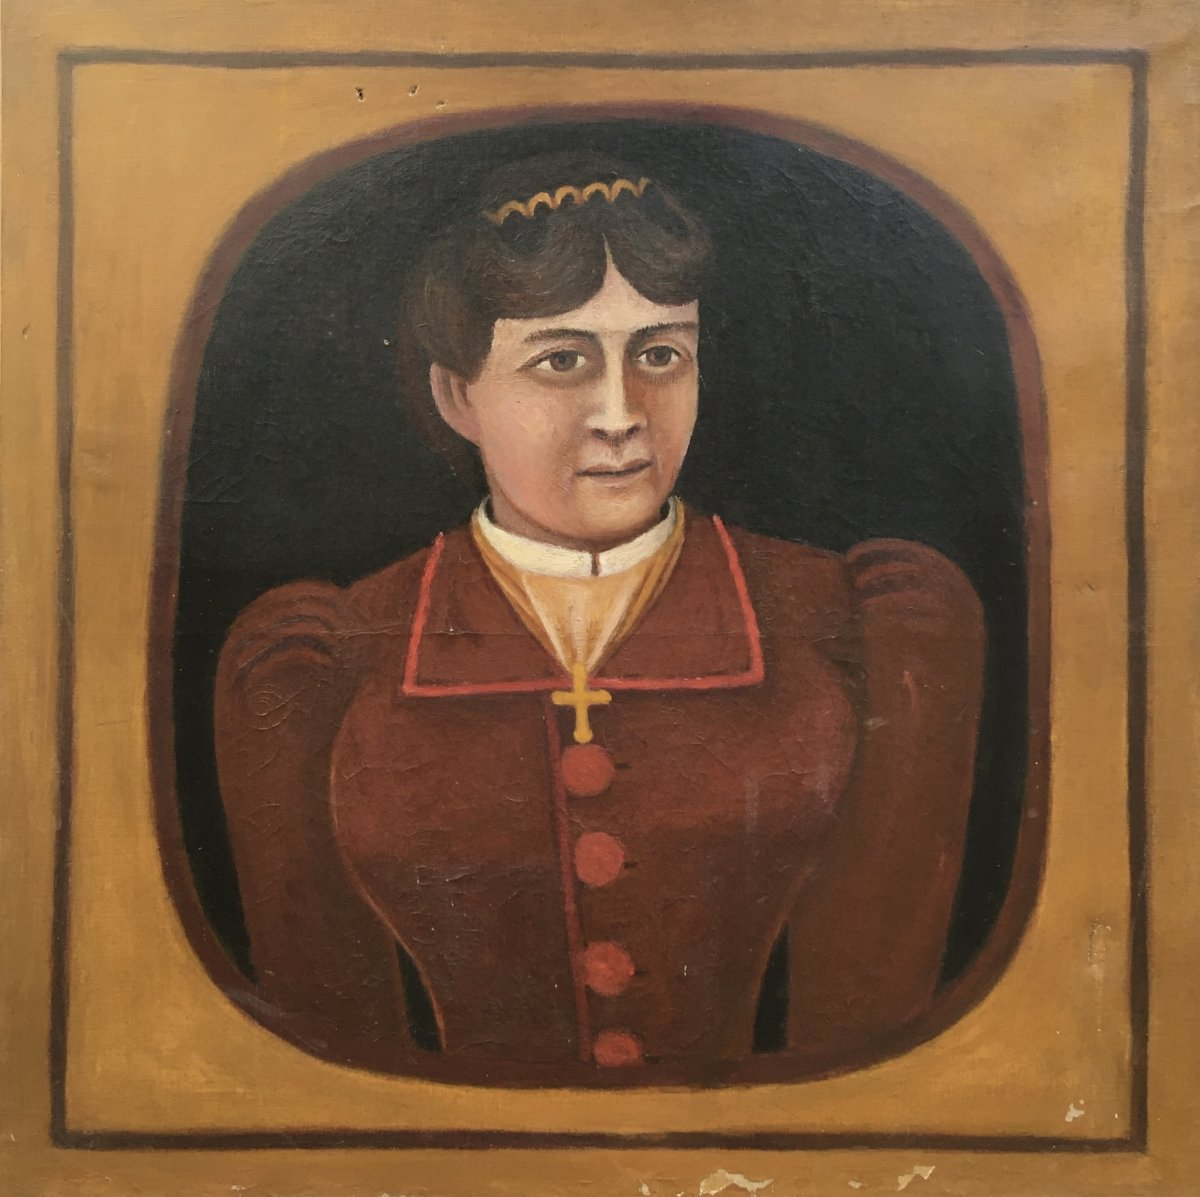 French School Of The XIXth Century. Portrait Of Woman In Red Dress. Oil On Canvas. Naive Art.